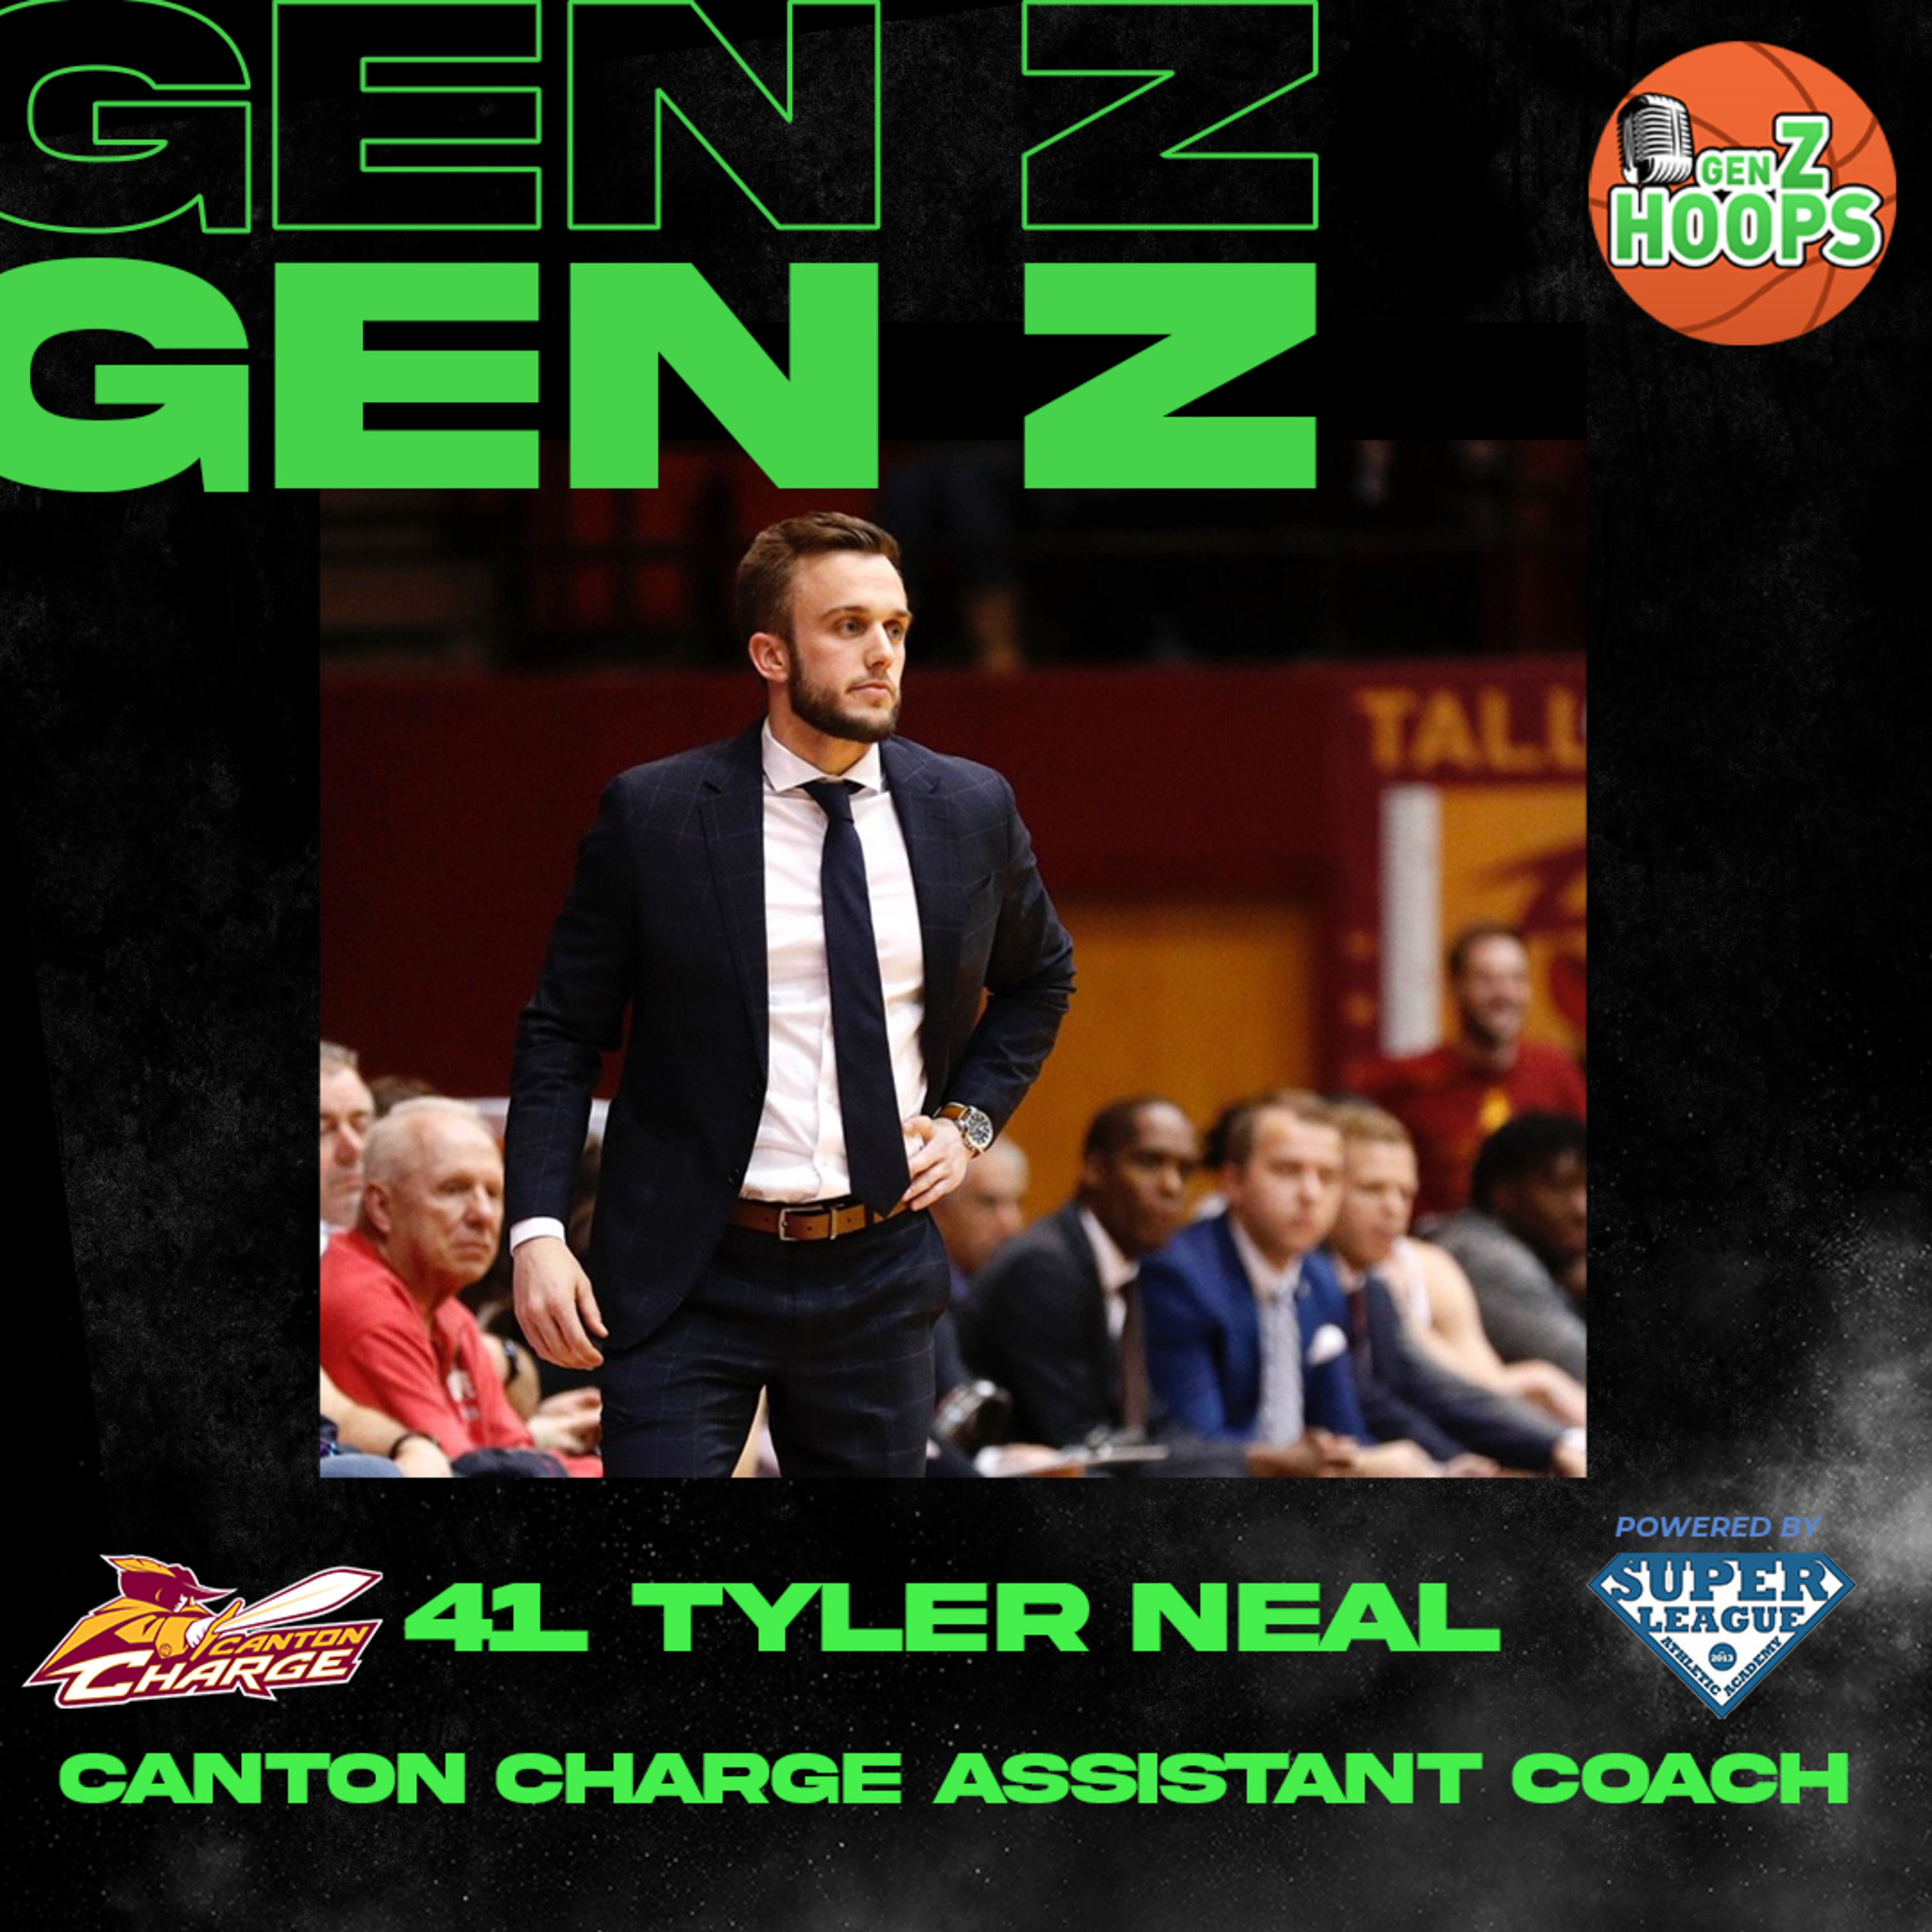 41. Tyler Neal - Canton Charge Assistant Coach